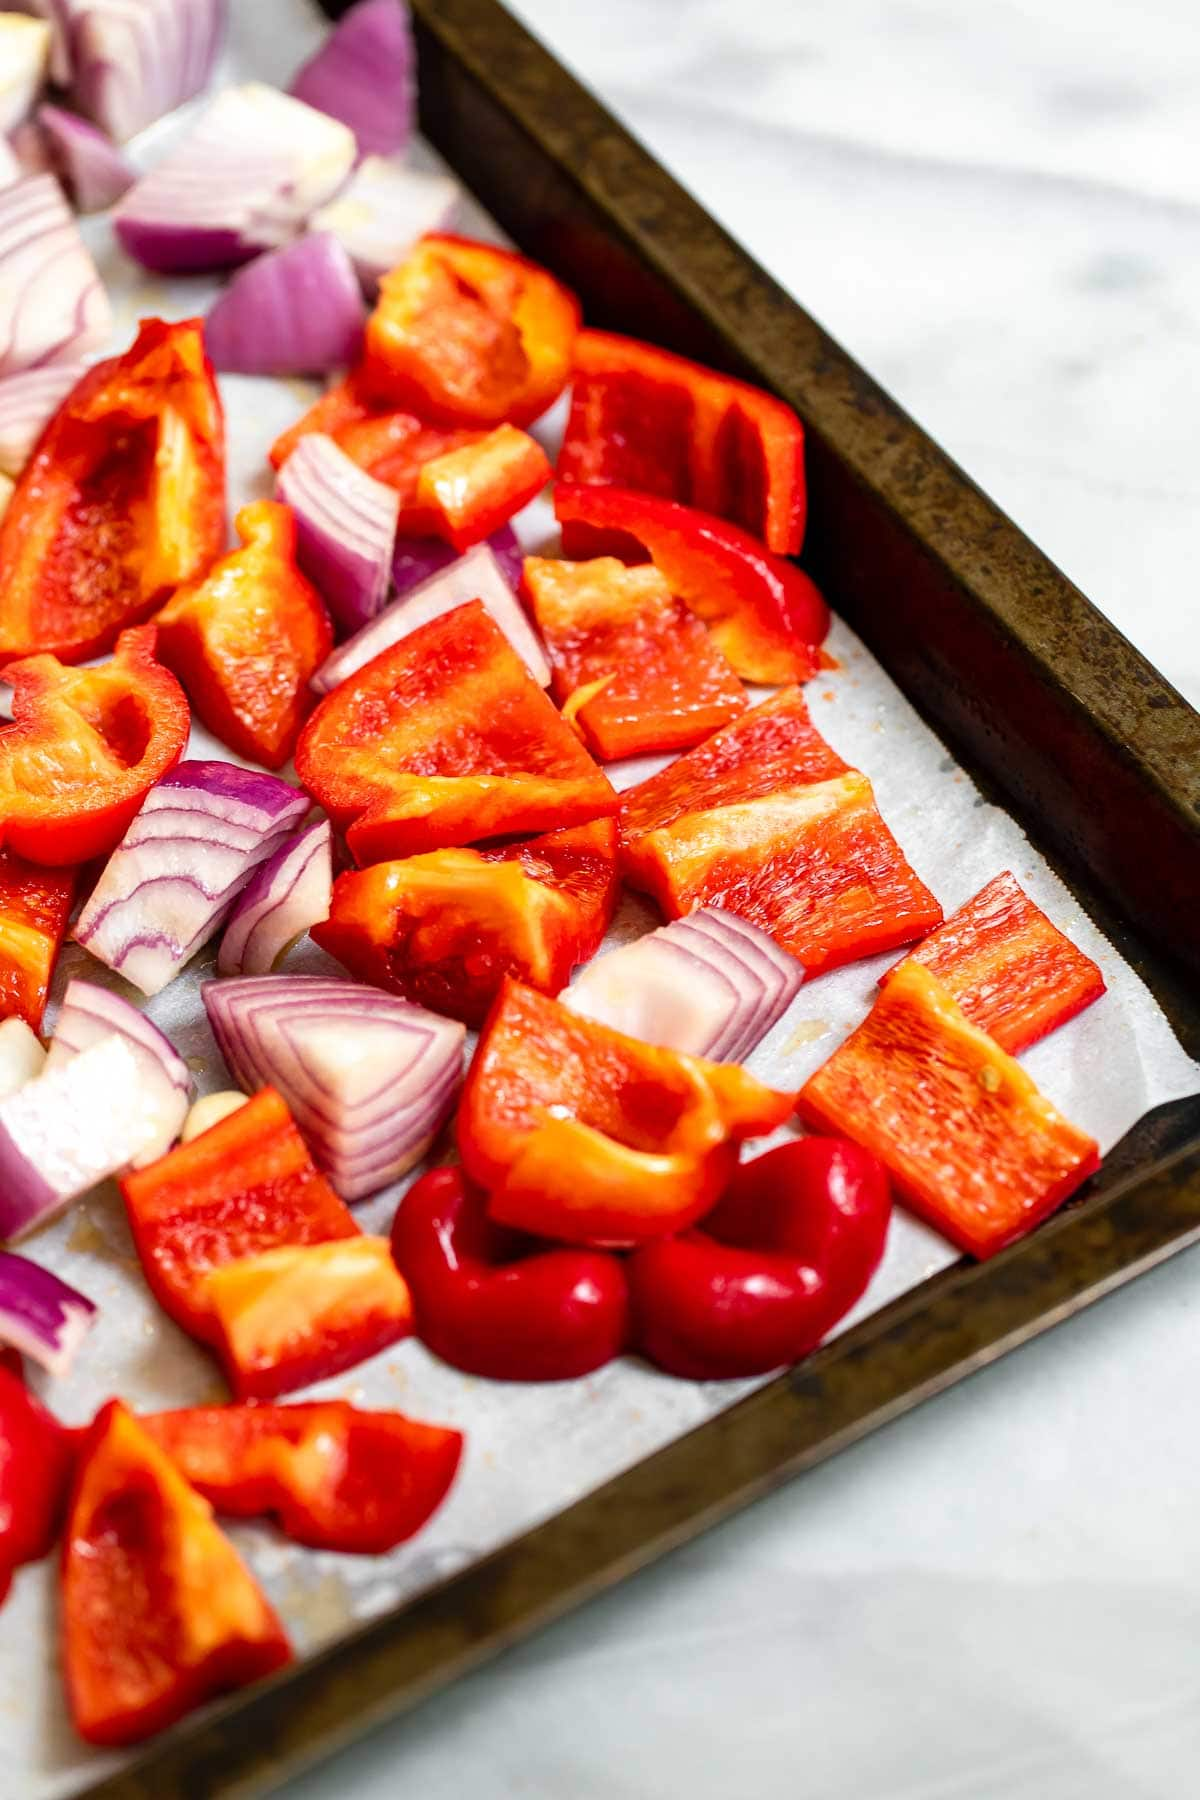 Veggies and onions on a baking tray with parchment paper.